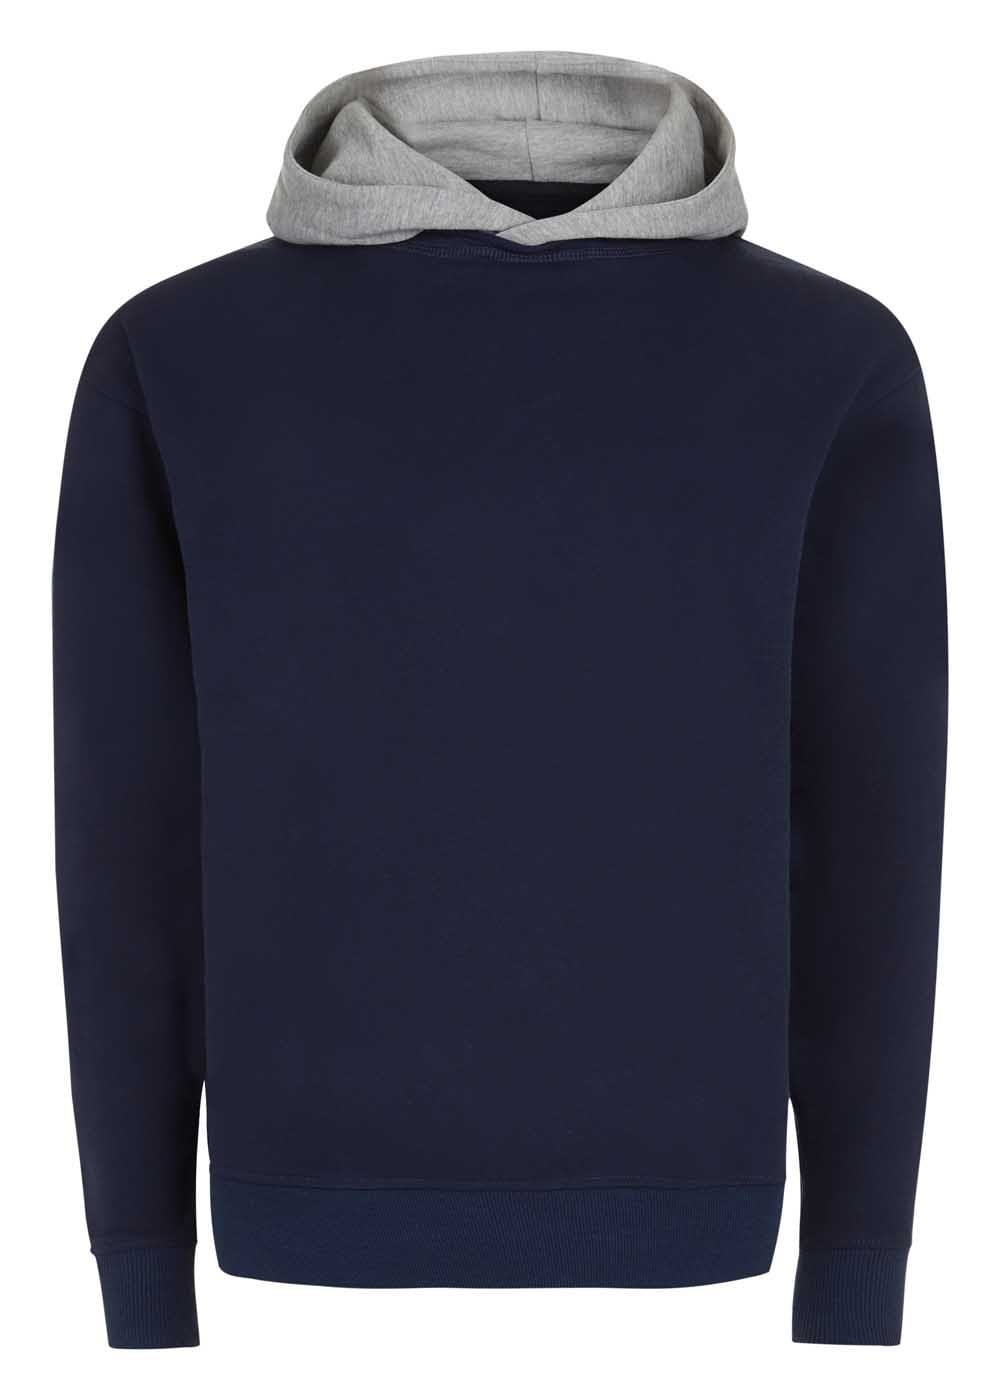 Teenzshop  Boys Navy Grey Nathaniel Hoodie